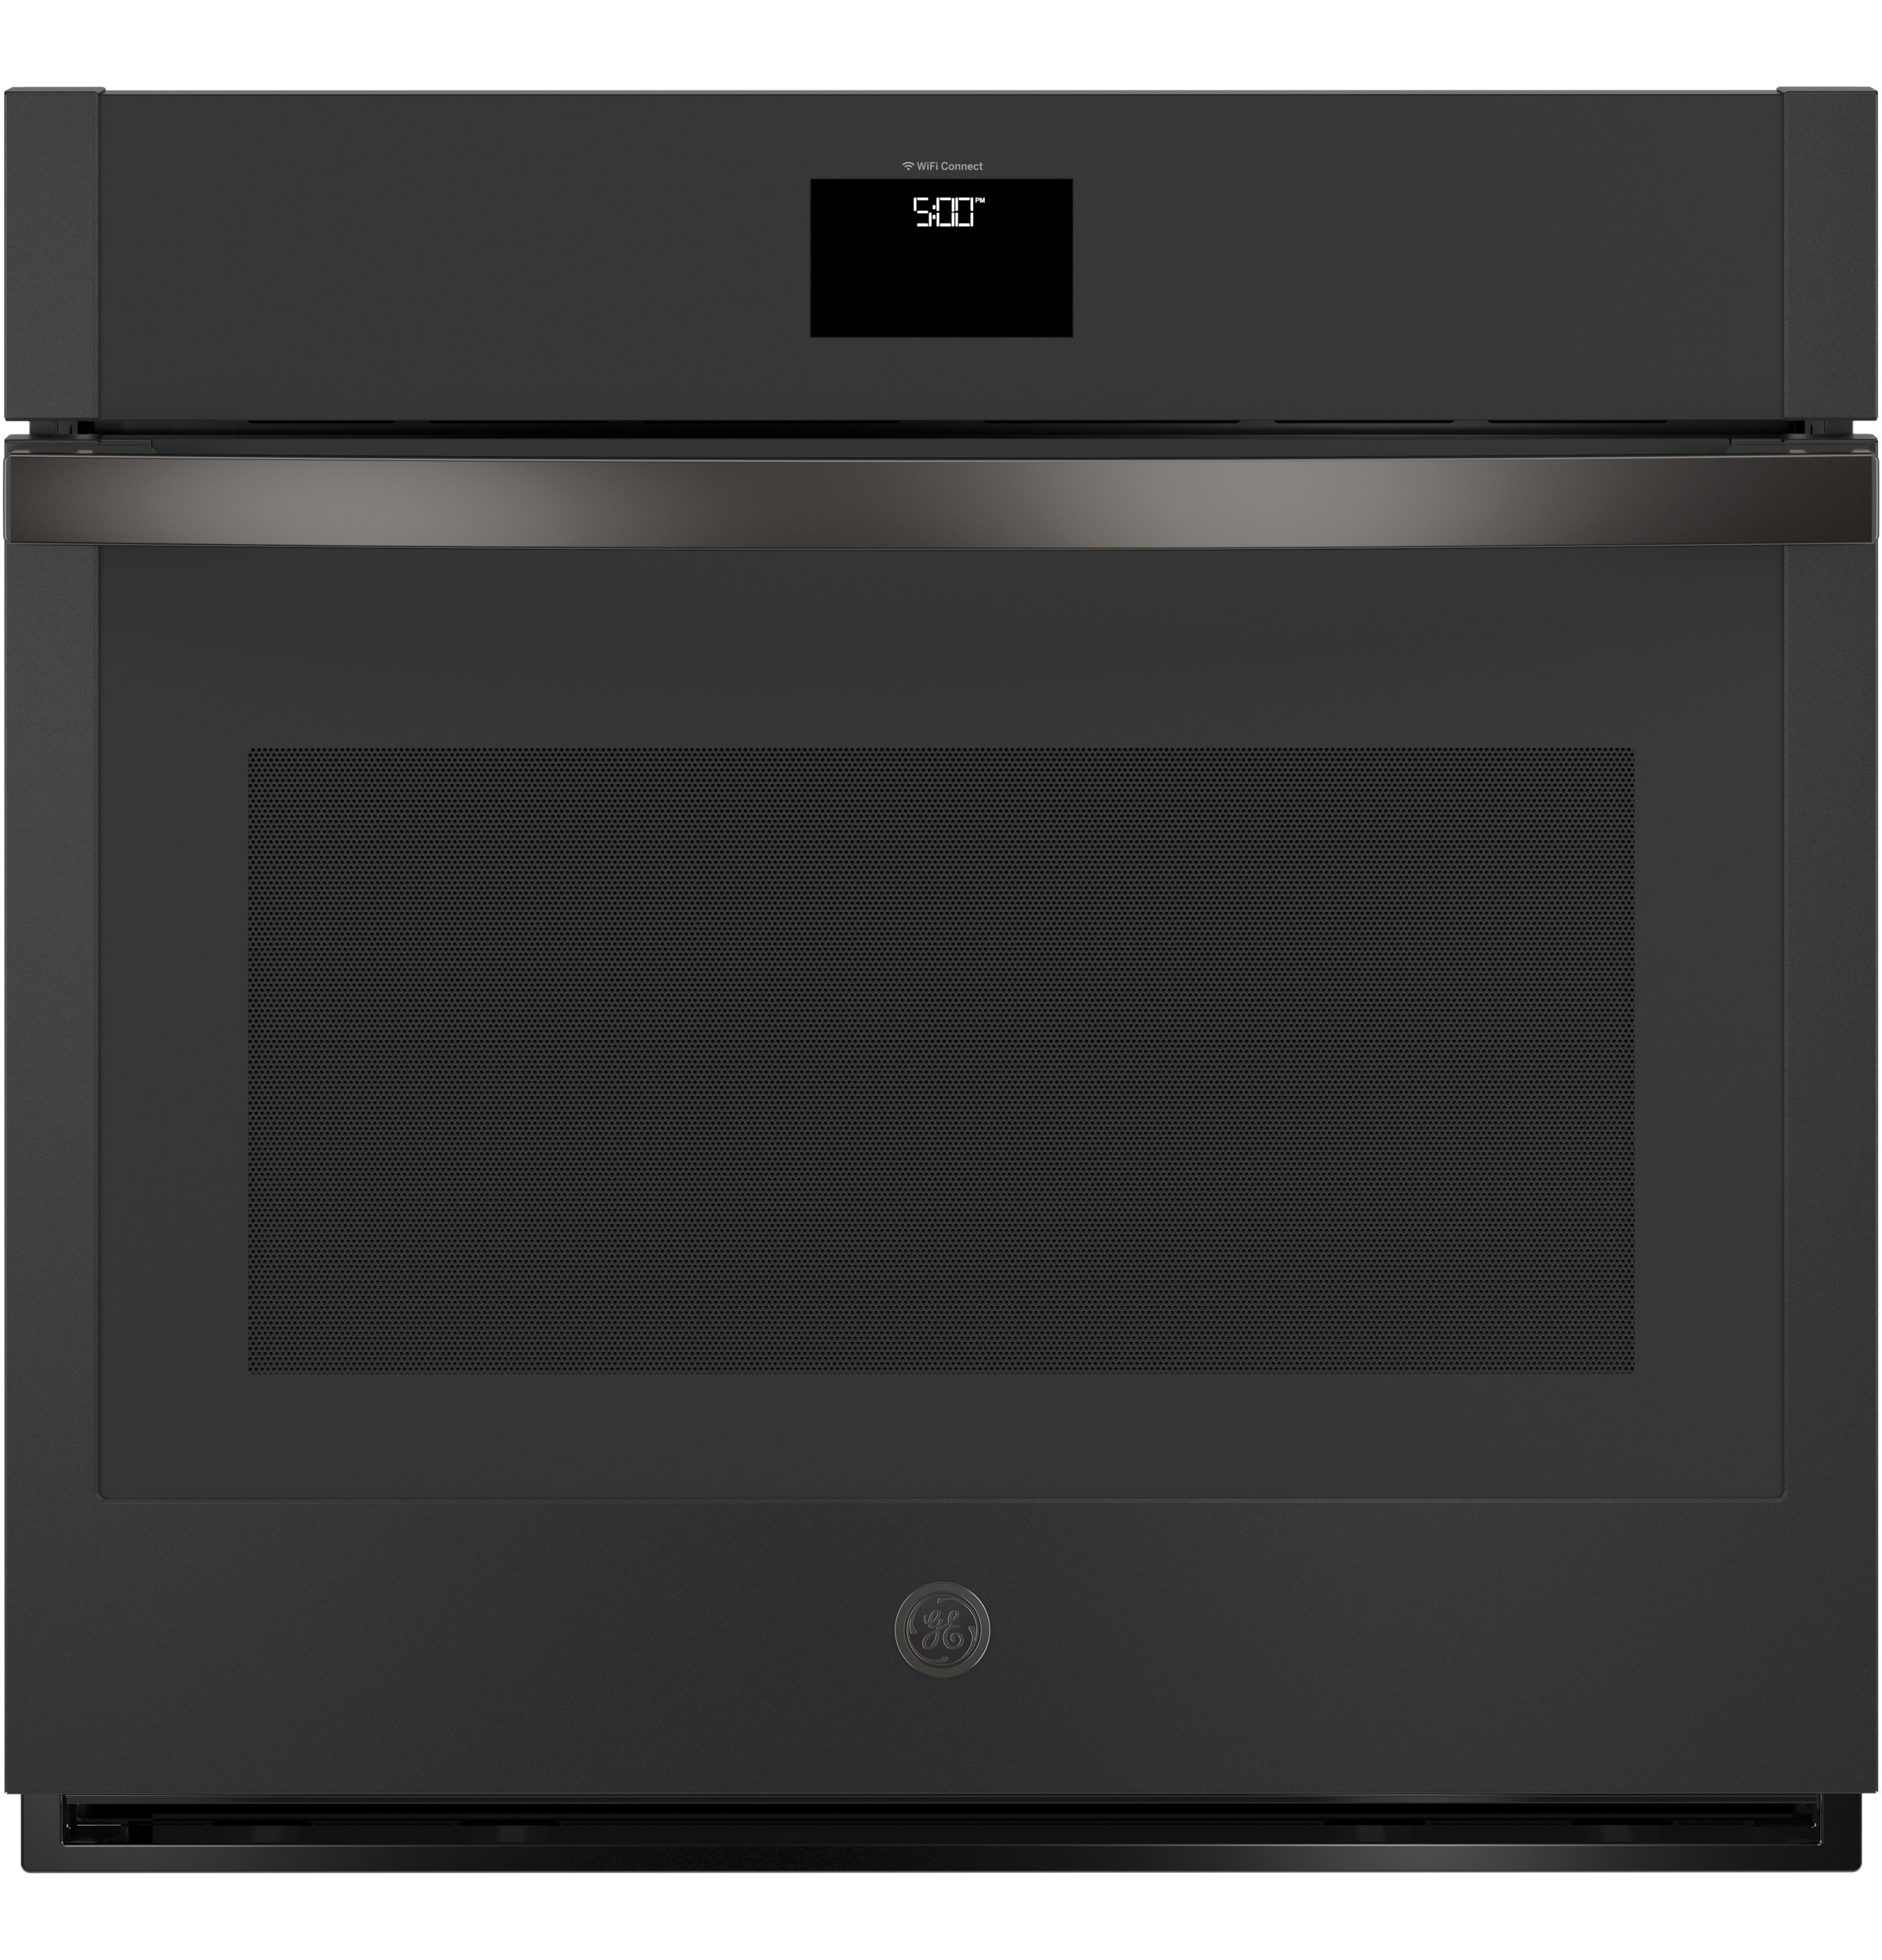 "GE GE® 30"" Smart Built-In Self-Clean Convection Single Wall Oven with Never Scrub Racks"